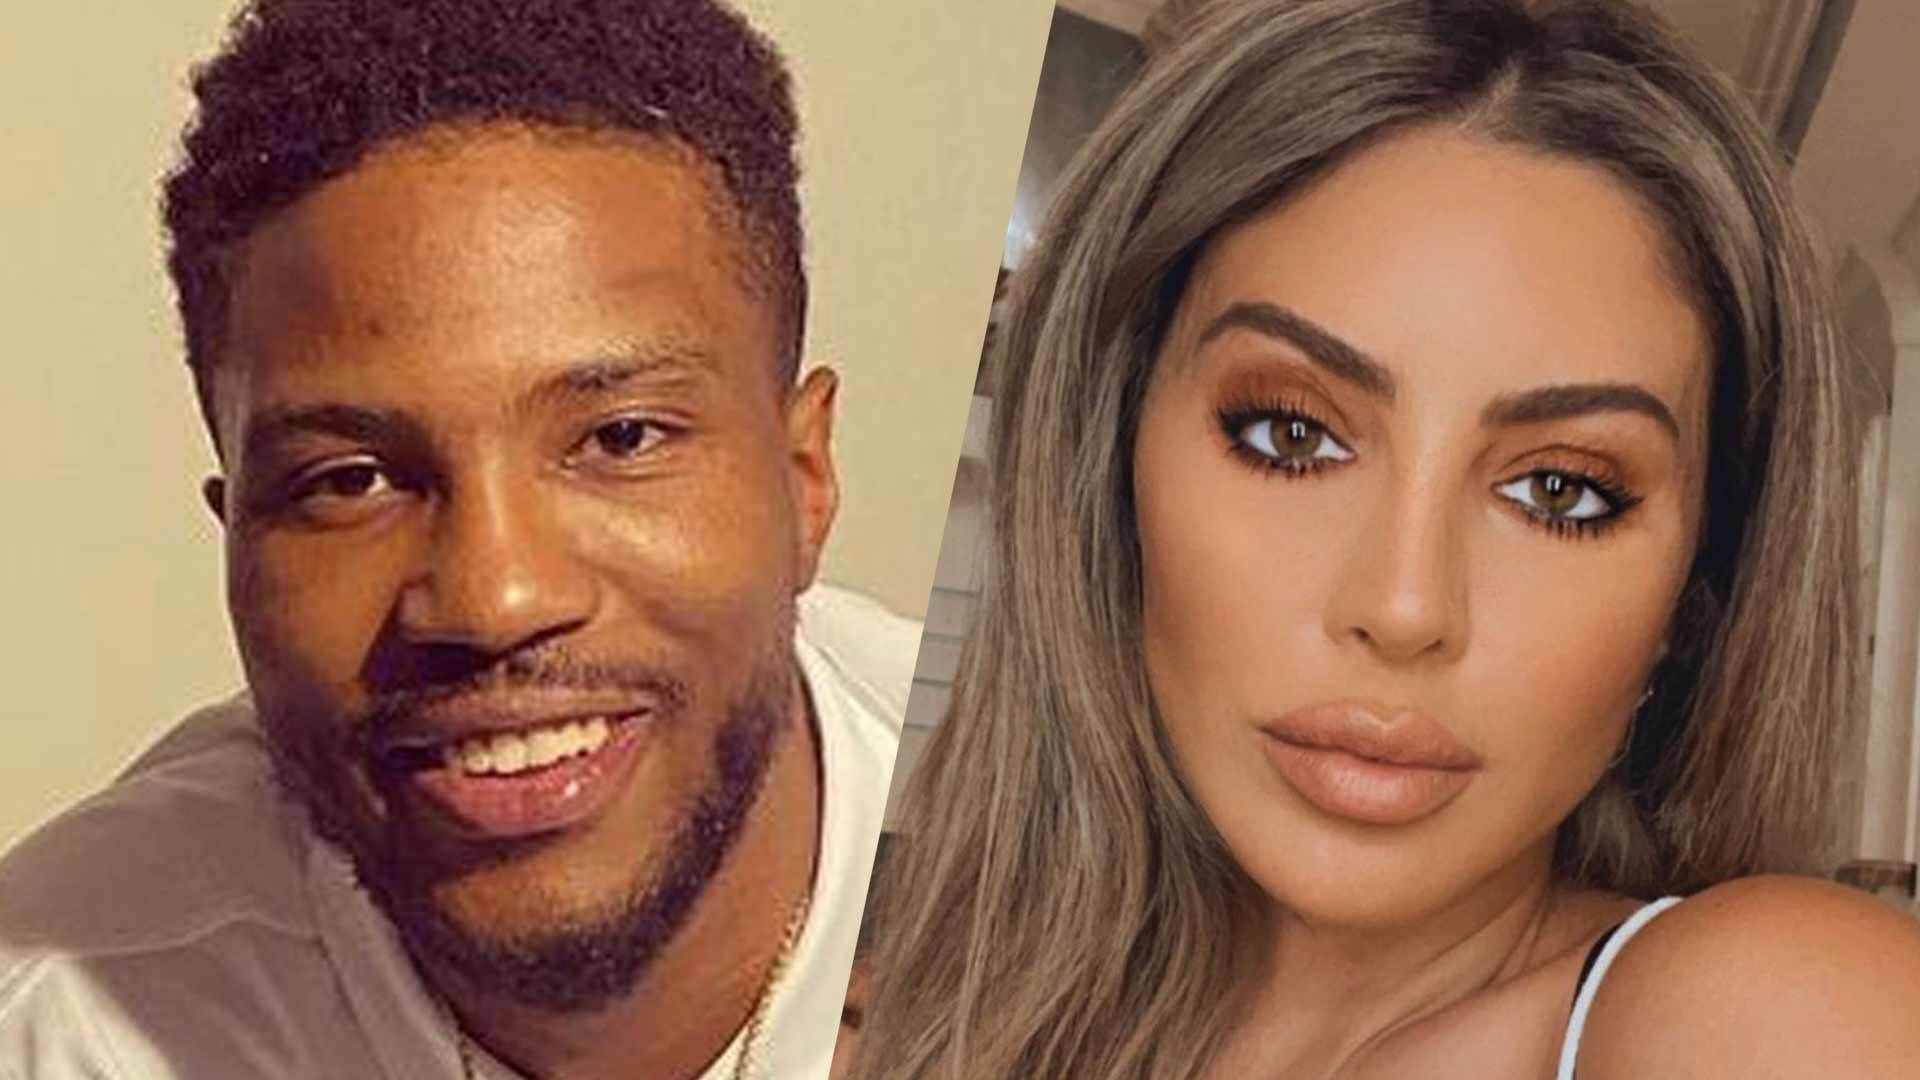 larsa-pippen-and-malik-beasley-call-it-quits-and-people-react